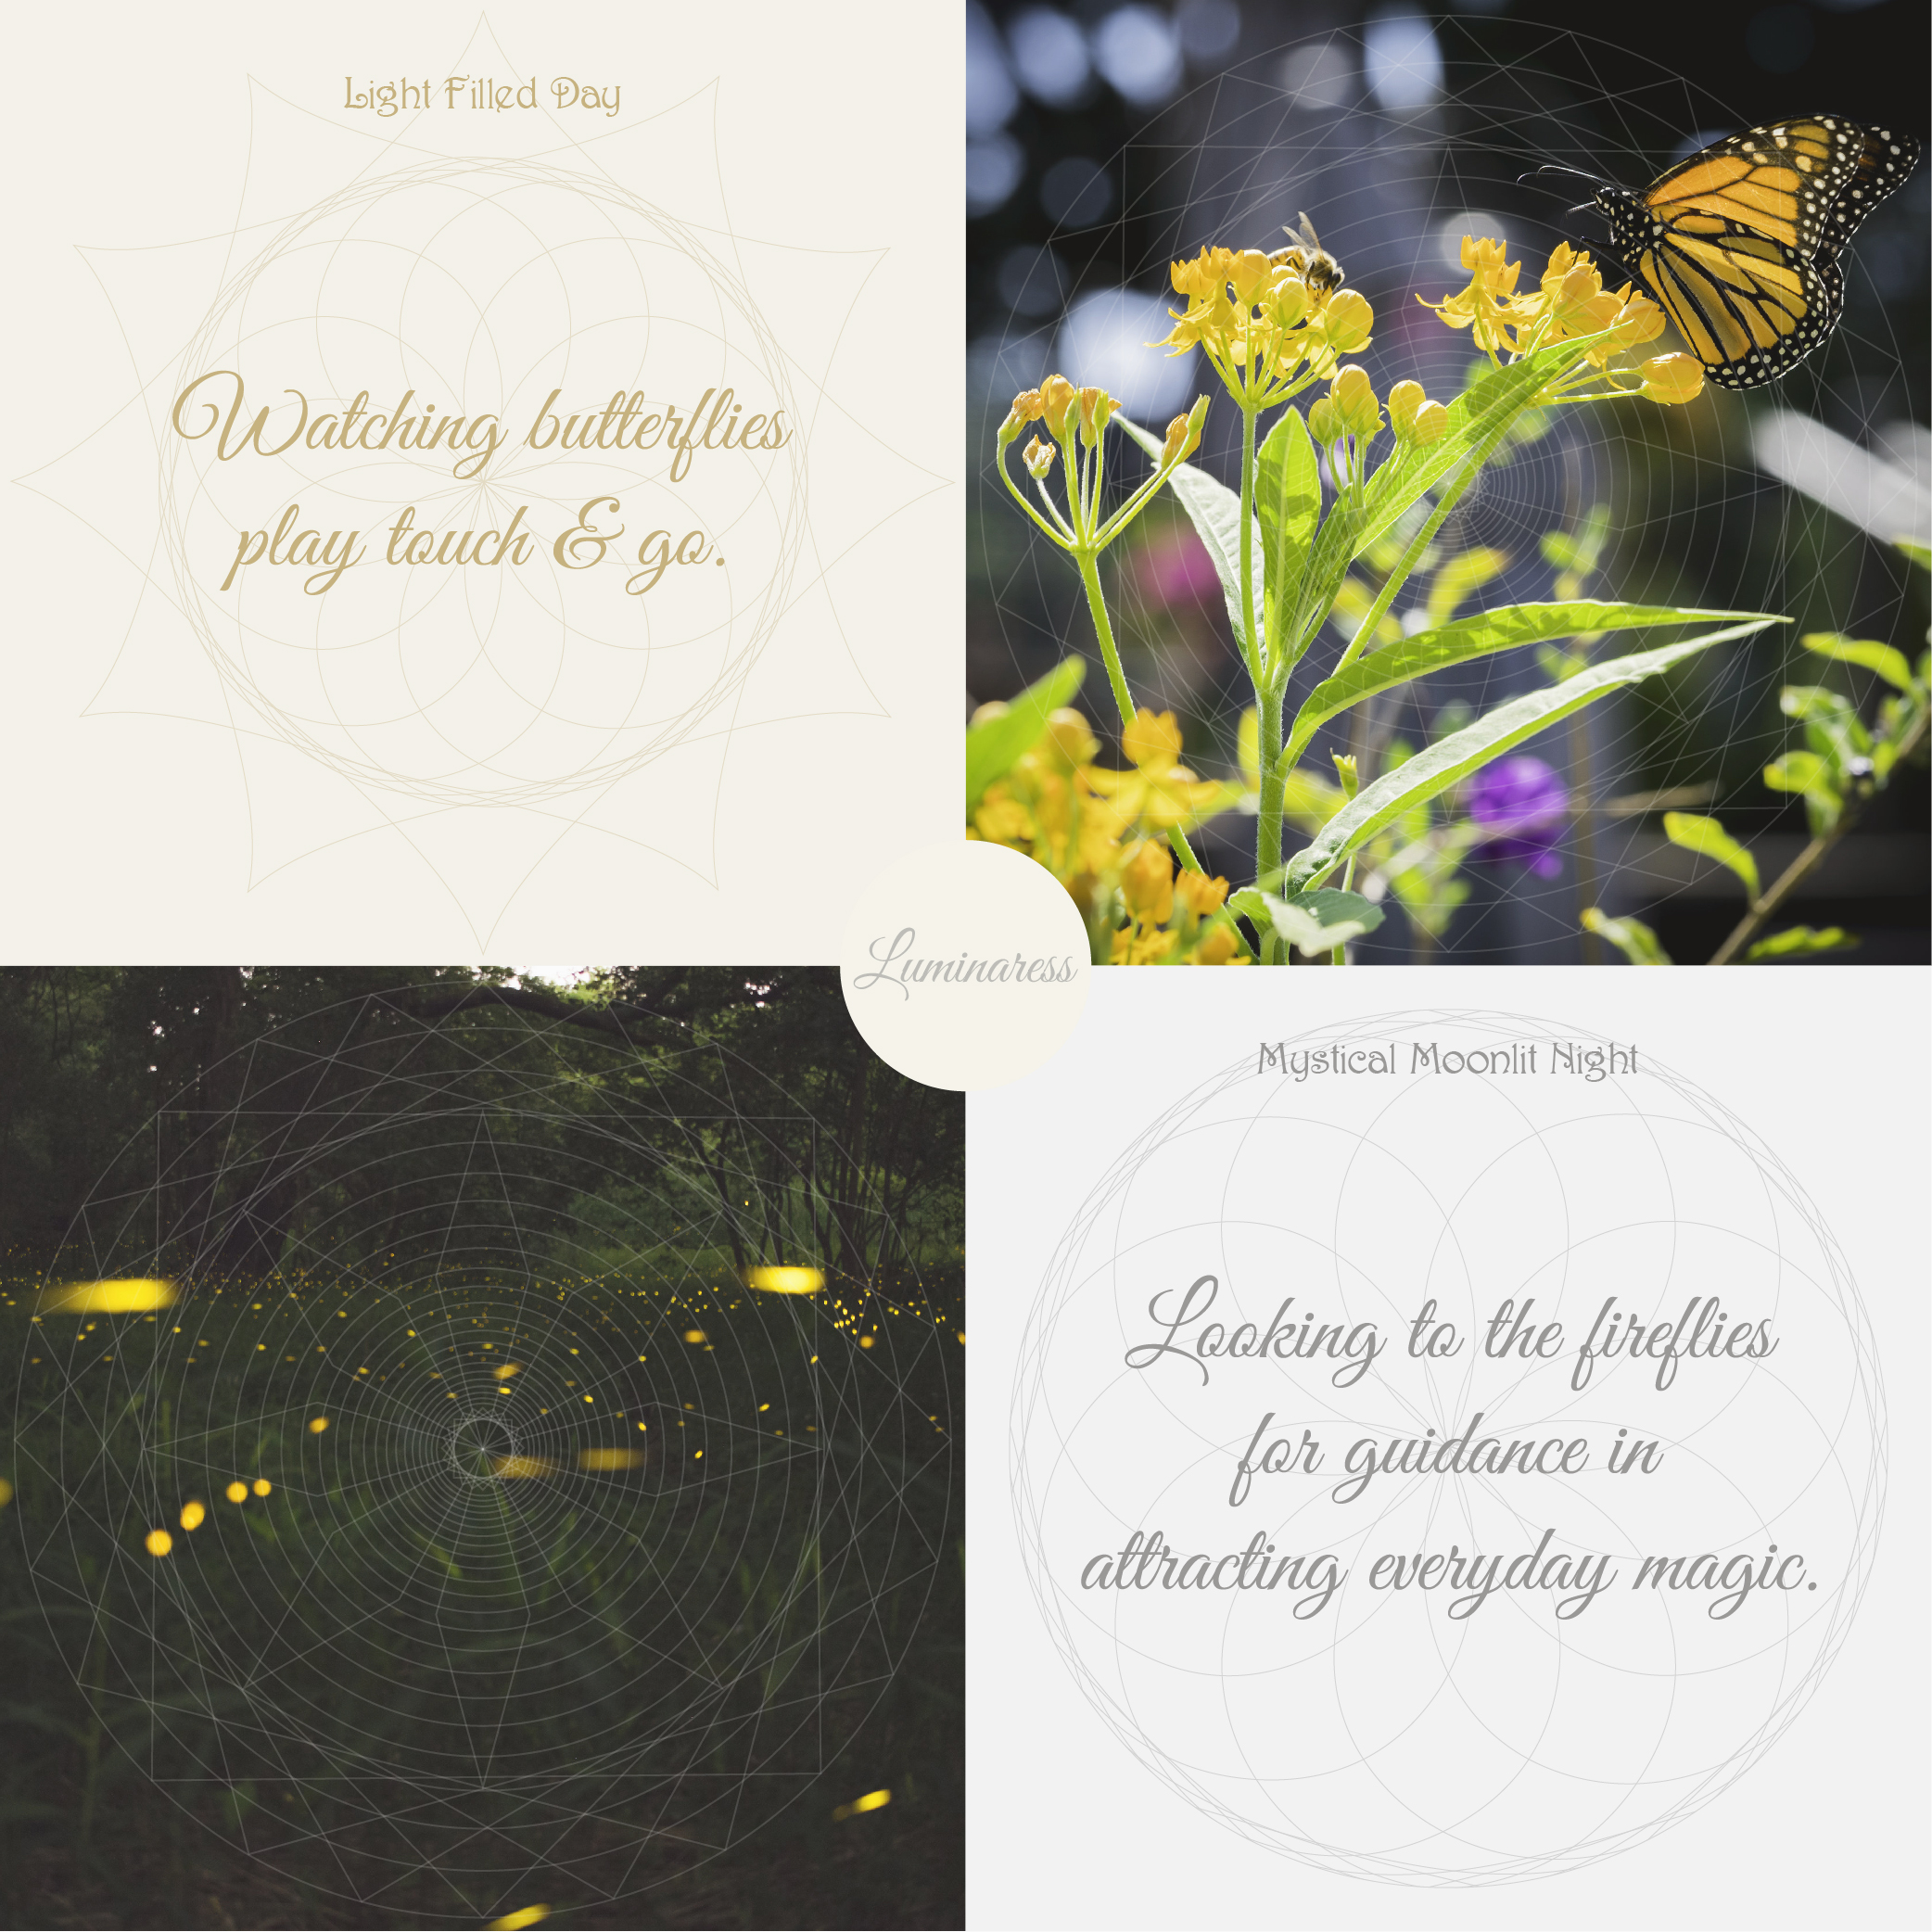 Light Filled Day:  Watching butterflies play touch & go.  Mystical Moonlit Night:  Looking to the fireflies for guidance in attracting everyday magic.